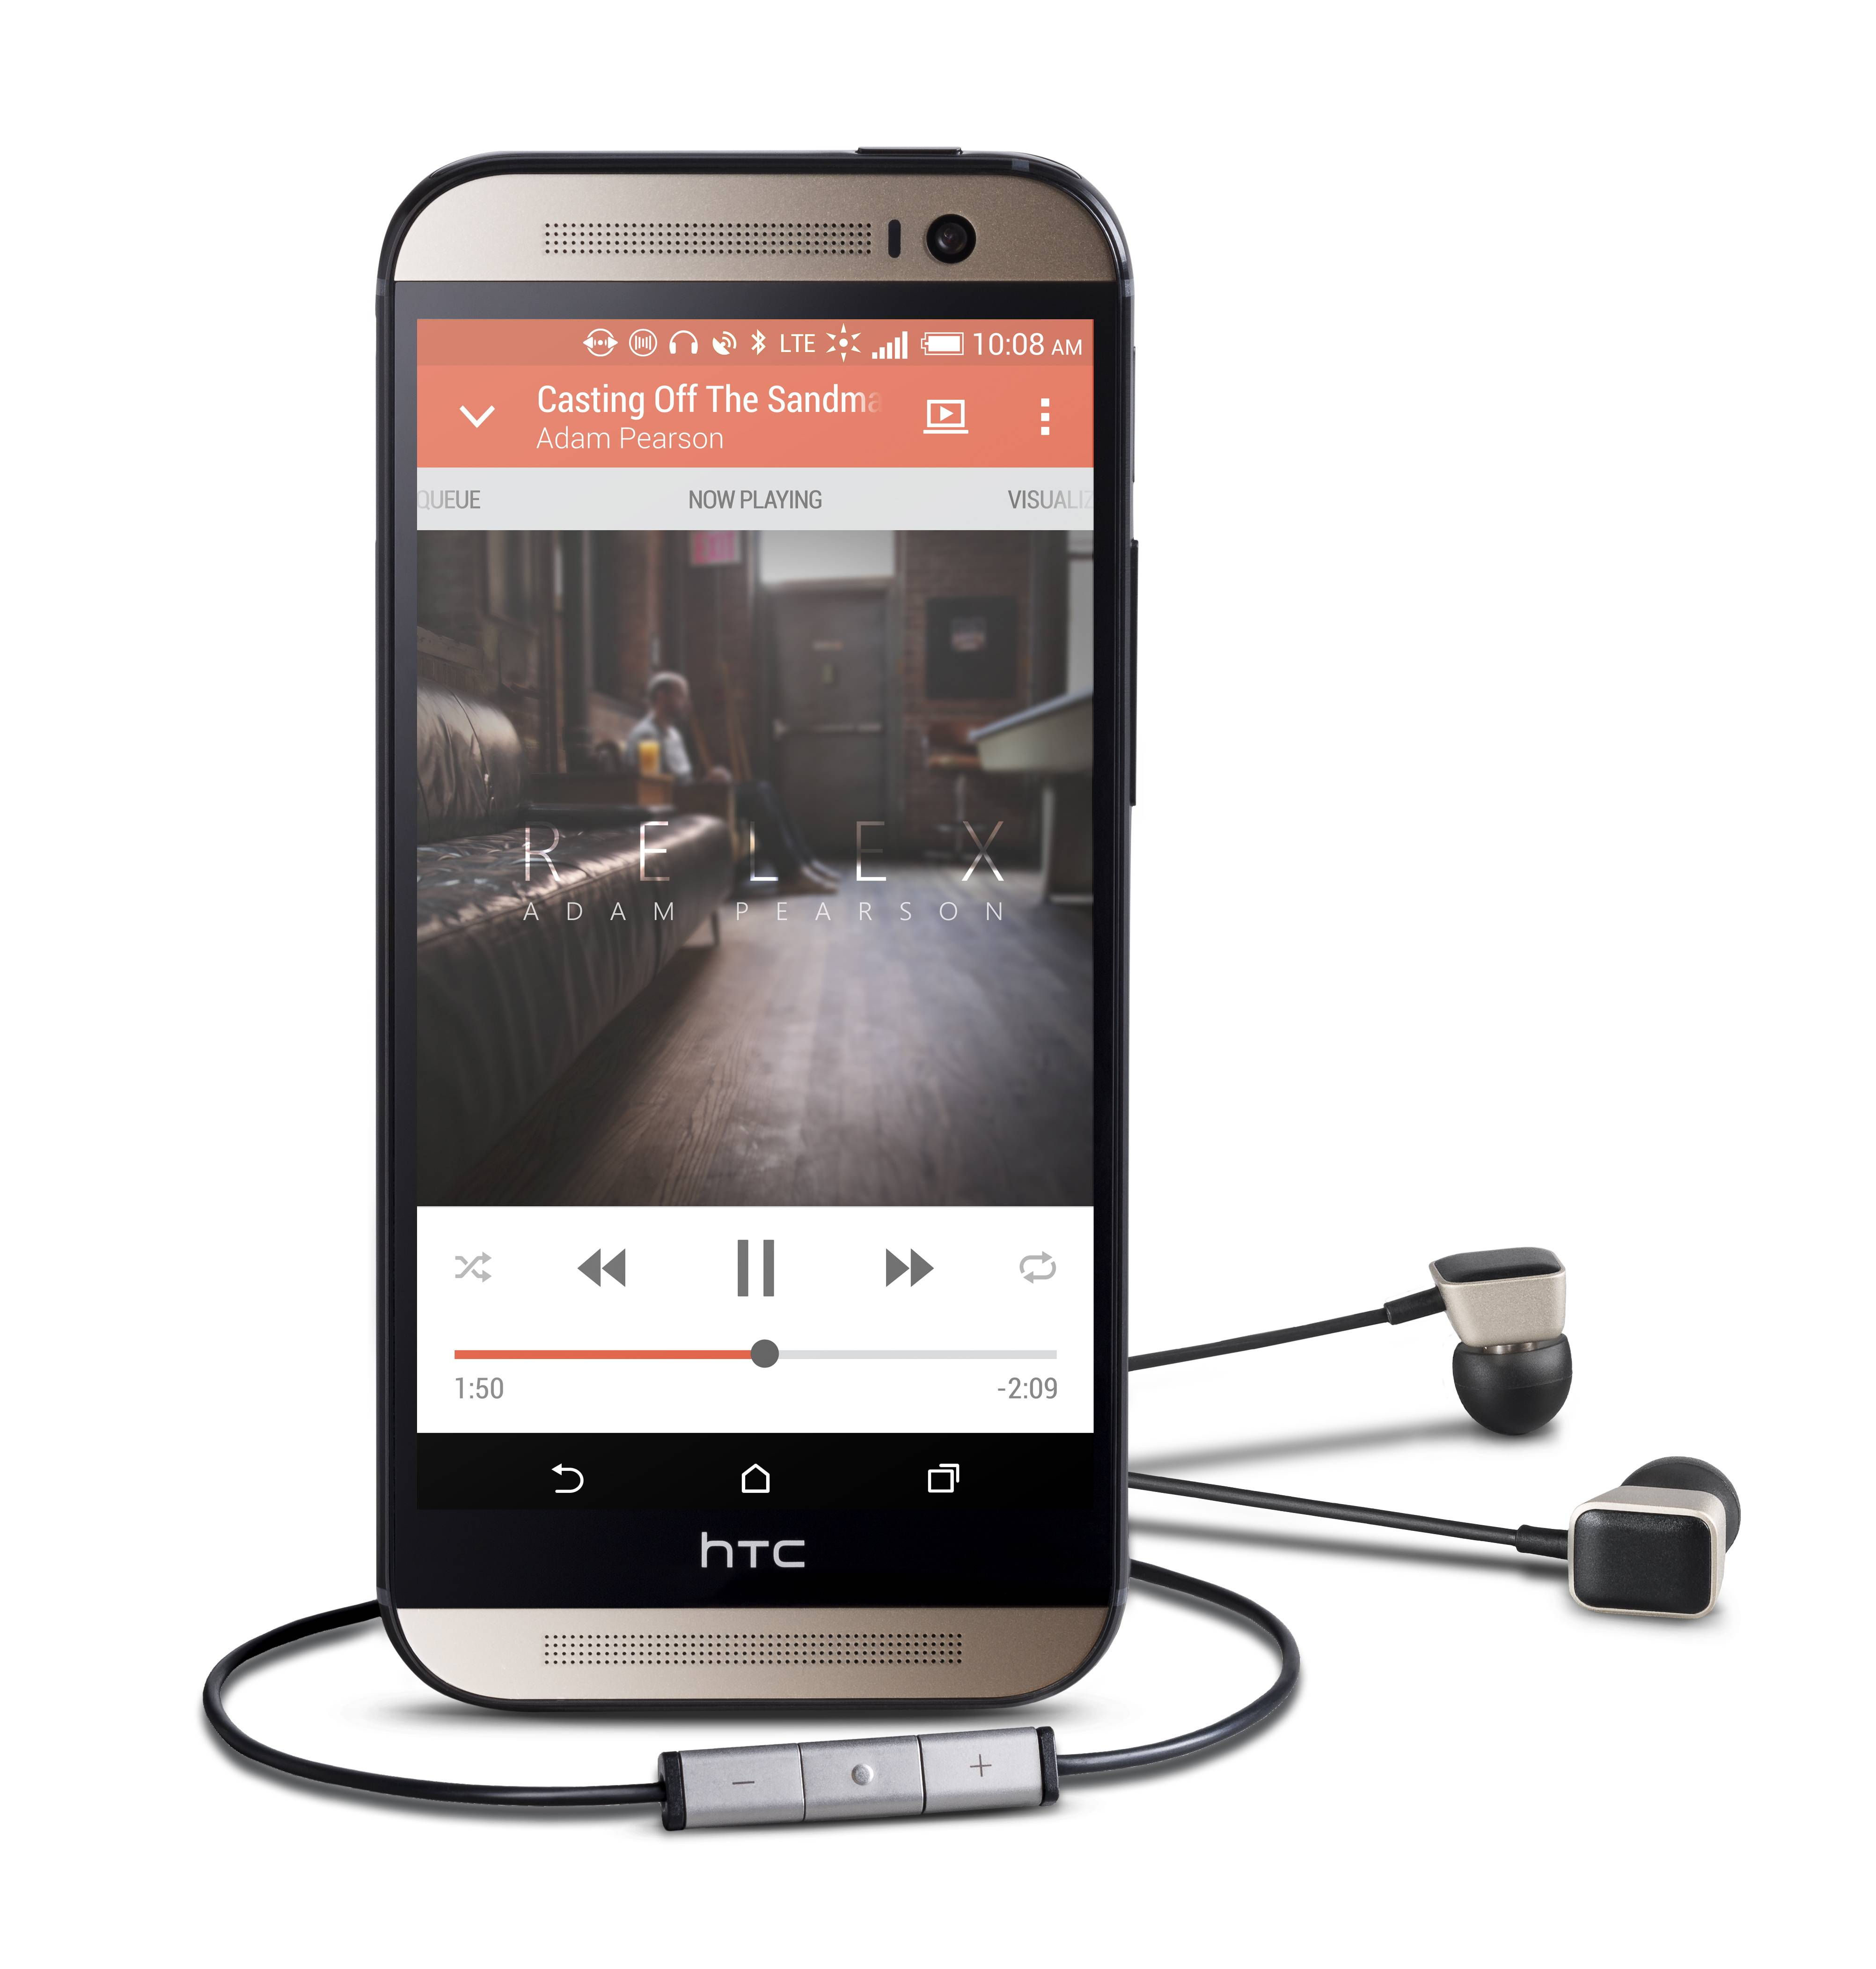 This product image provided by Harmon Kardon shows the HTC One M8 smartphone and AE-S Premium headphones. The phone features Clari-Fi, a new technology from Harman Kardon, which aims to restore some of the audio signal that is lost because of digital compression in today's download and streaming formats.